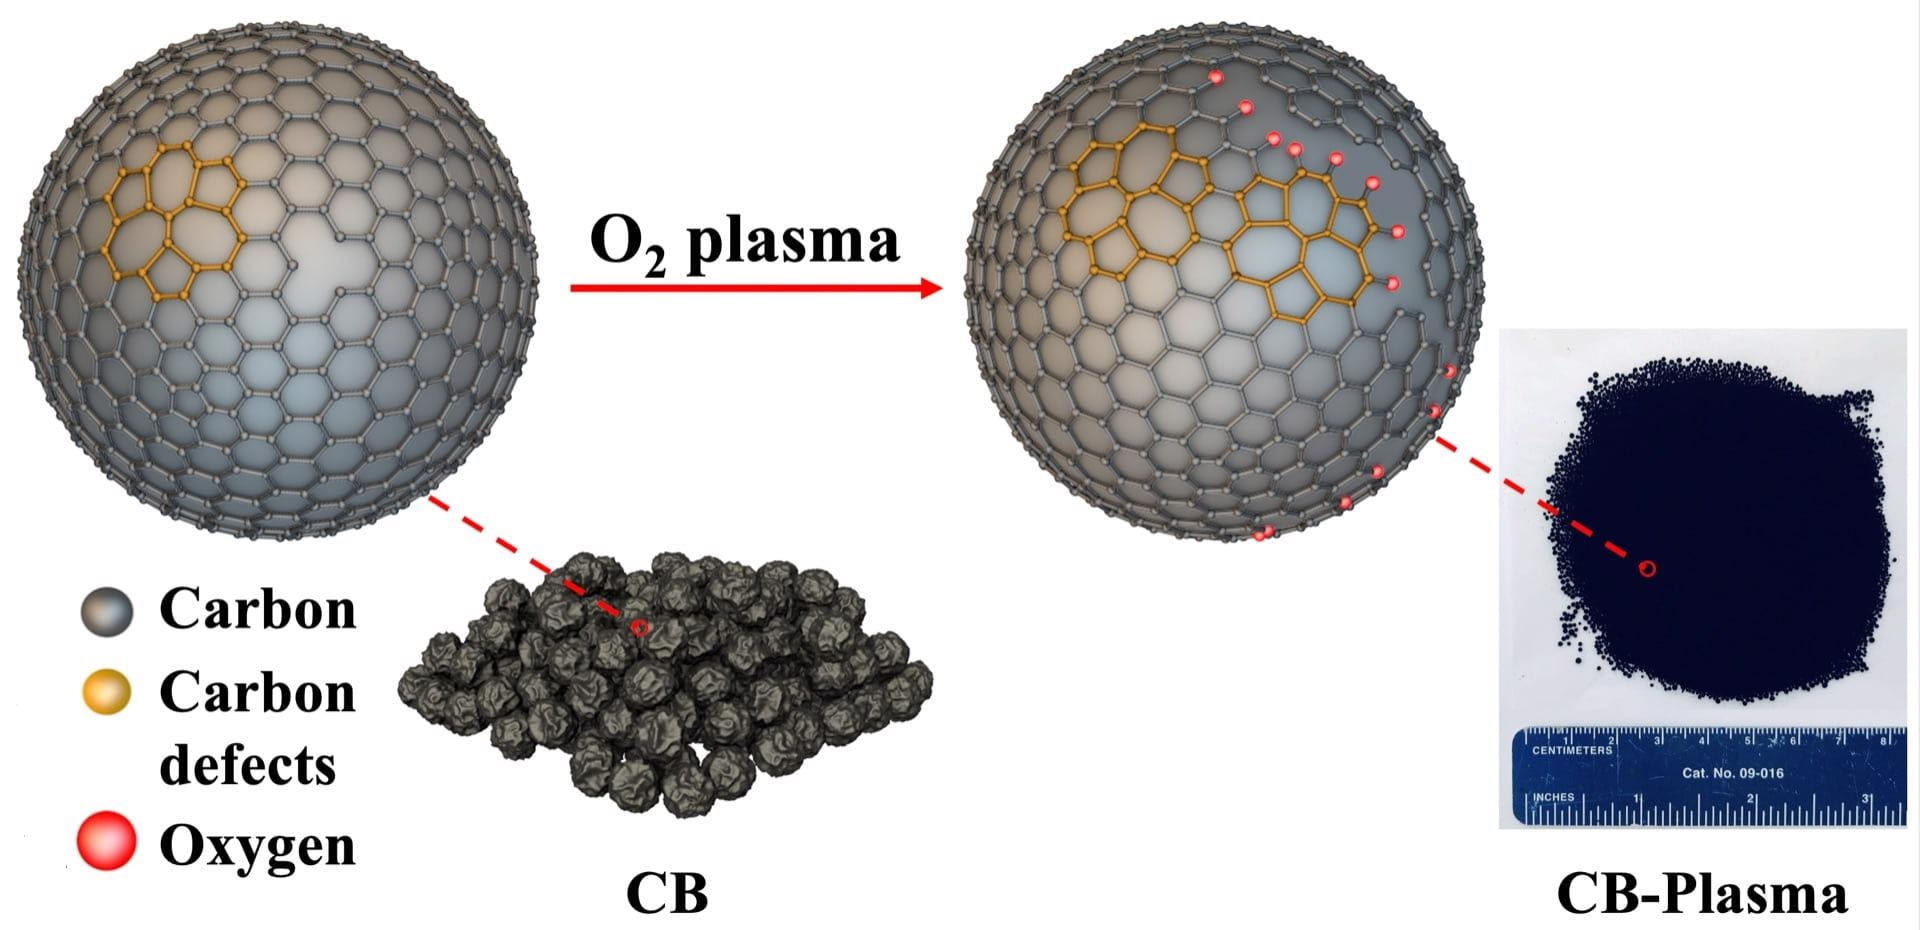 Scientists at Rice University have introduced plasma-treated carbon black as a simple and highly efficient catalyst for the production of hydrogen peroxide. Defects created in the carbon provide more catalytic sites to reduce oxygen to hydrogen peroxide.